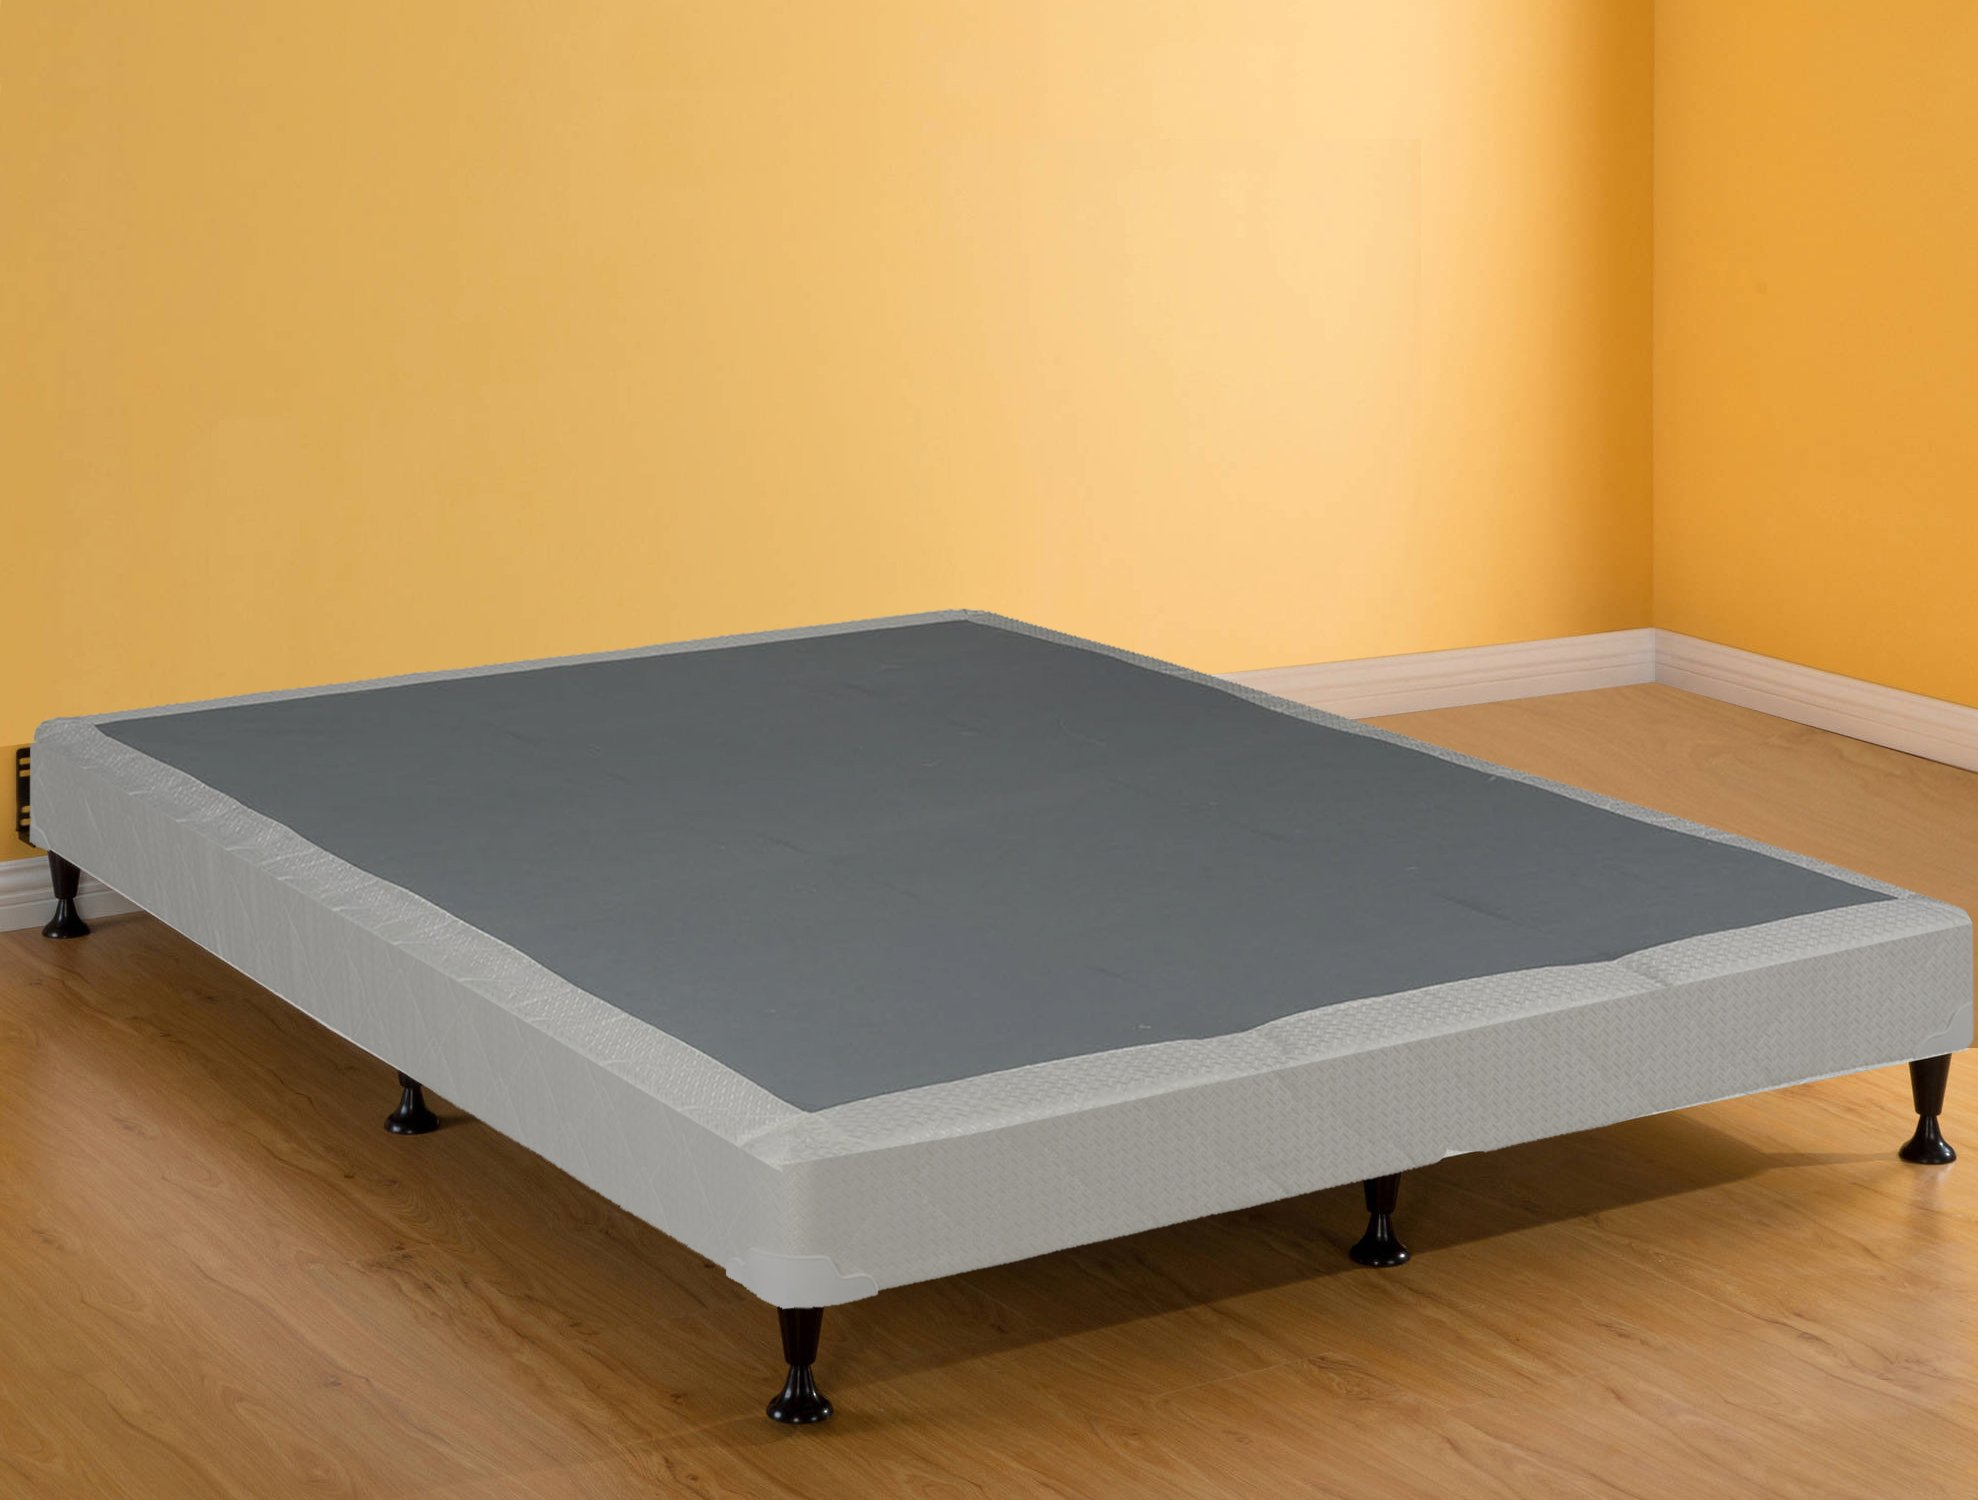 Greaton 99v-3/3-3LP Assembled Long Lasting 4 Box Spring for Mattress Size 74, Twin, inch